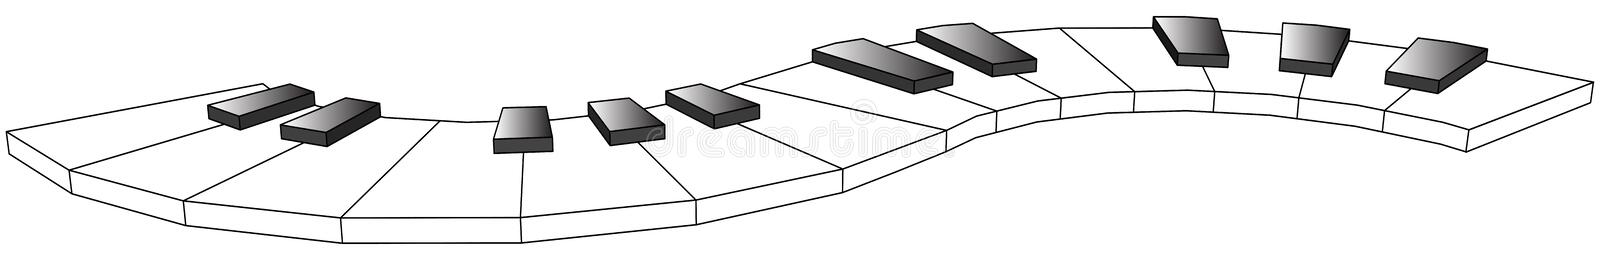 Curved piano keys, two octaves, 3d. An element for the decoration of your design, isolated on white background. EPS10 vector illustration royalty free illustration